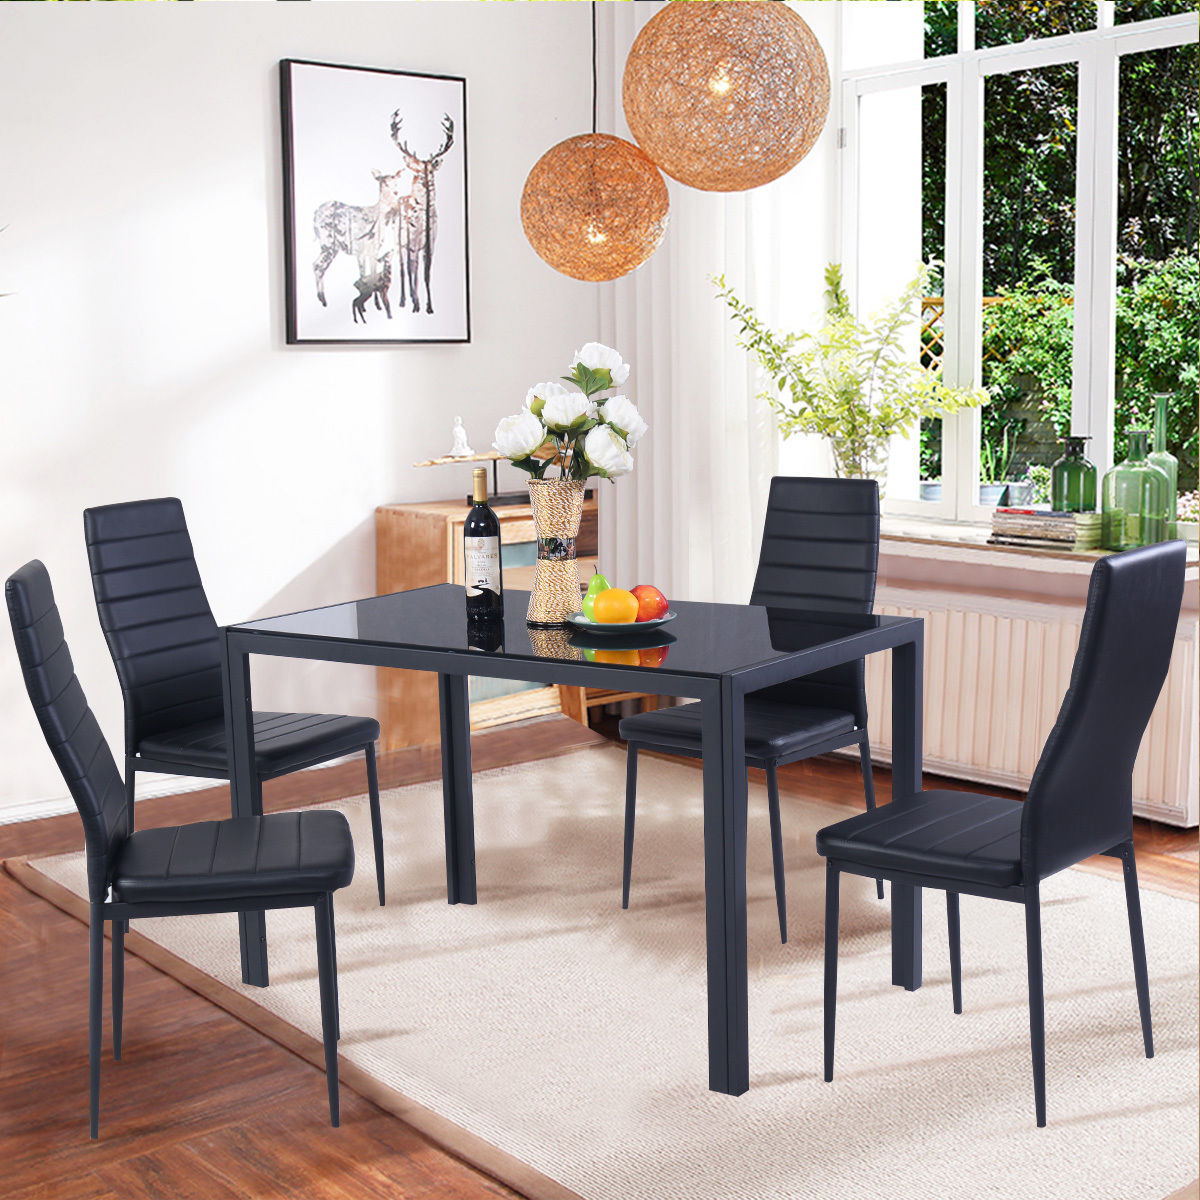 Best Dining Table Chairs Secrets That No One Else Knows About